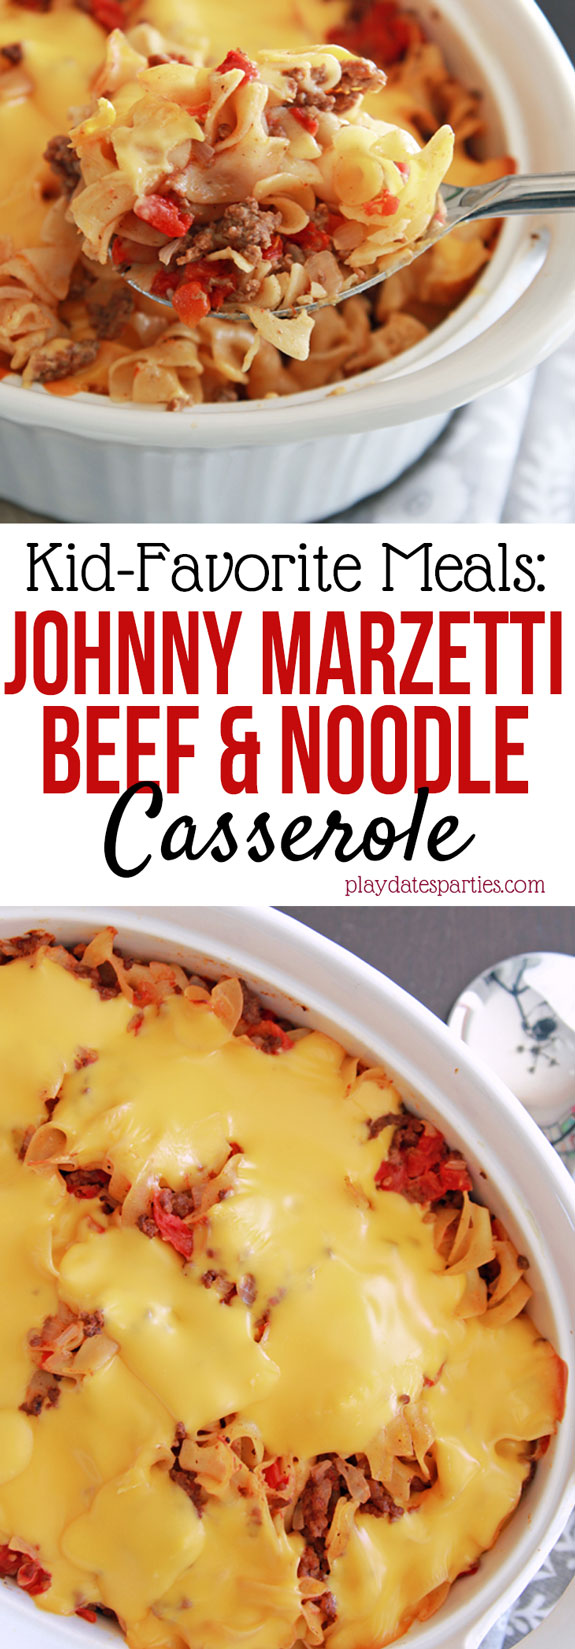 Johnny Marzetti Noodle Casserole is an easy comfort food #recipe that everyone in the #family loves. Filled with ground beef and noodles, and smothered with a cheesy sauce, this is the ultimate in comfort food!